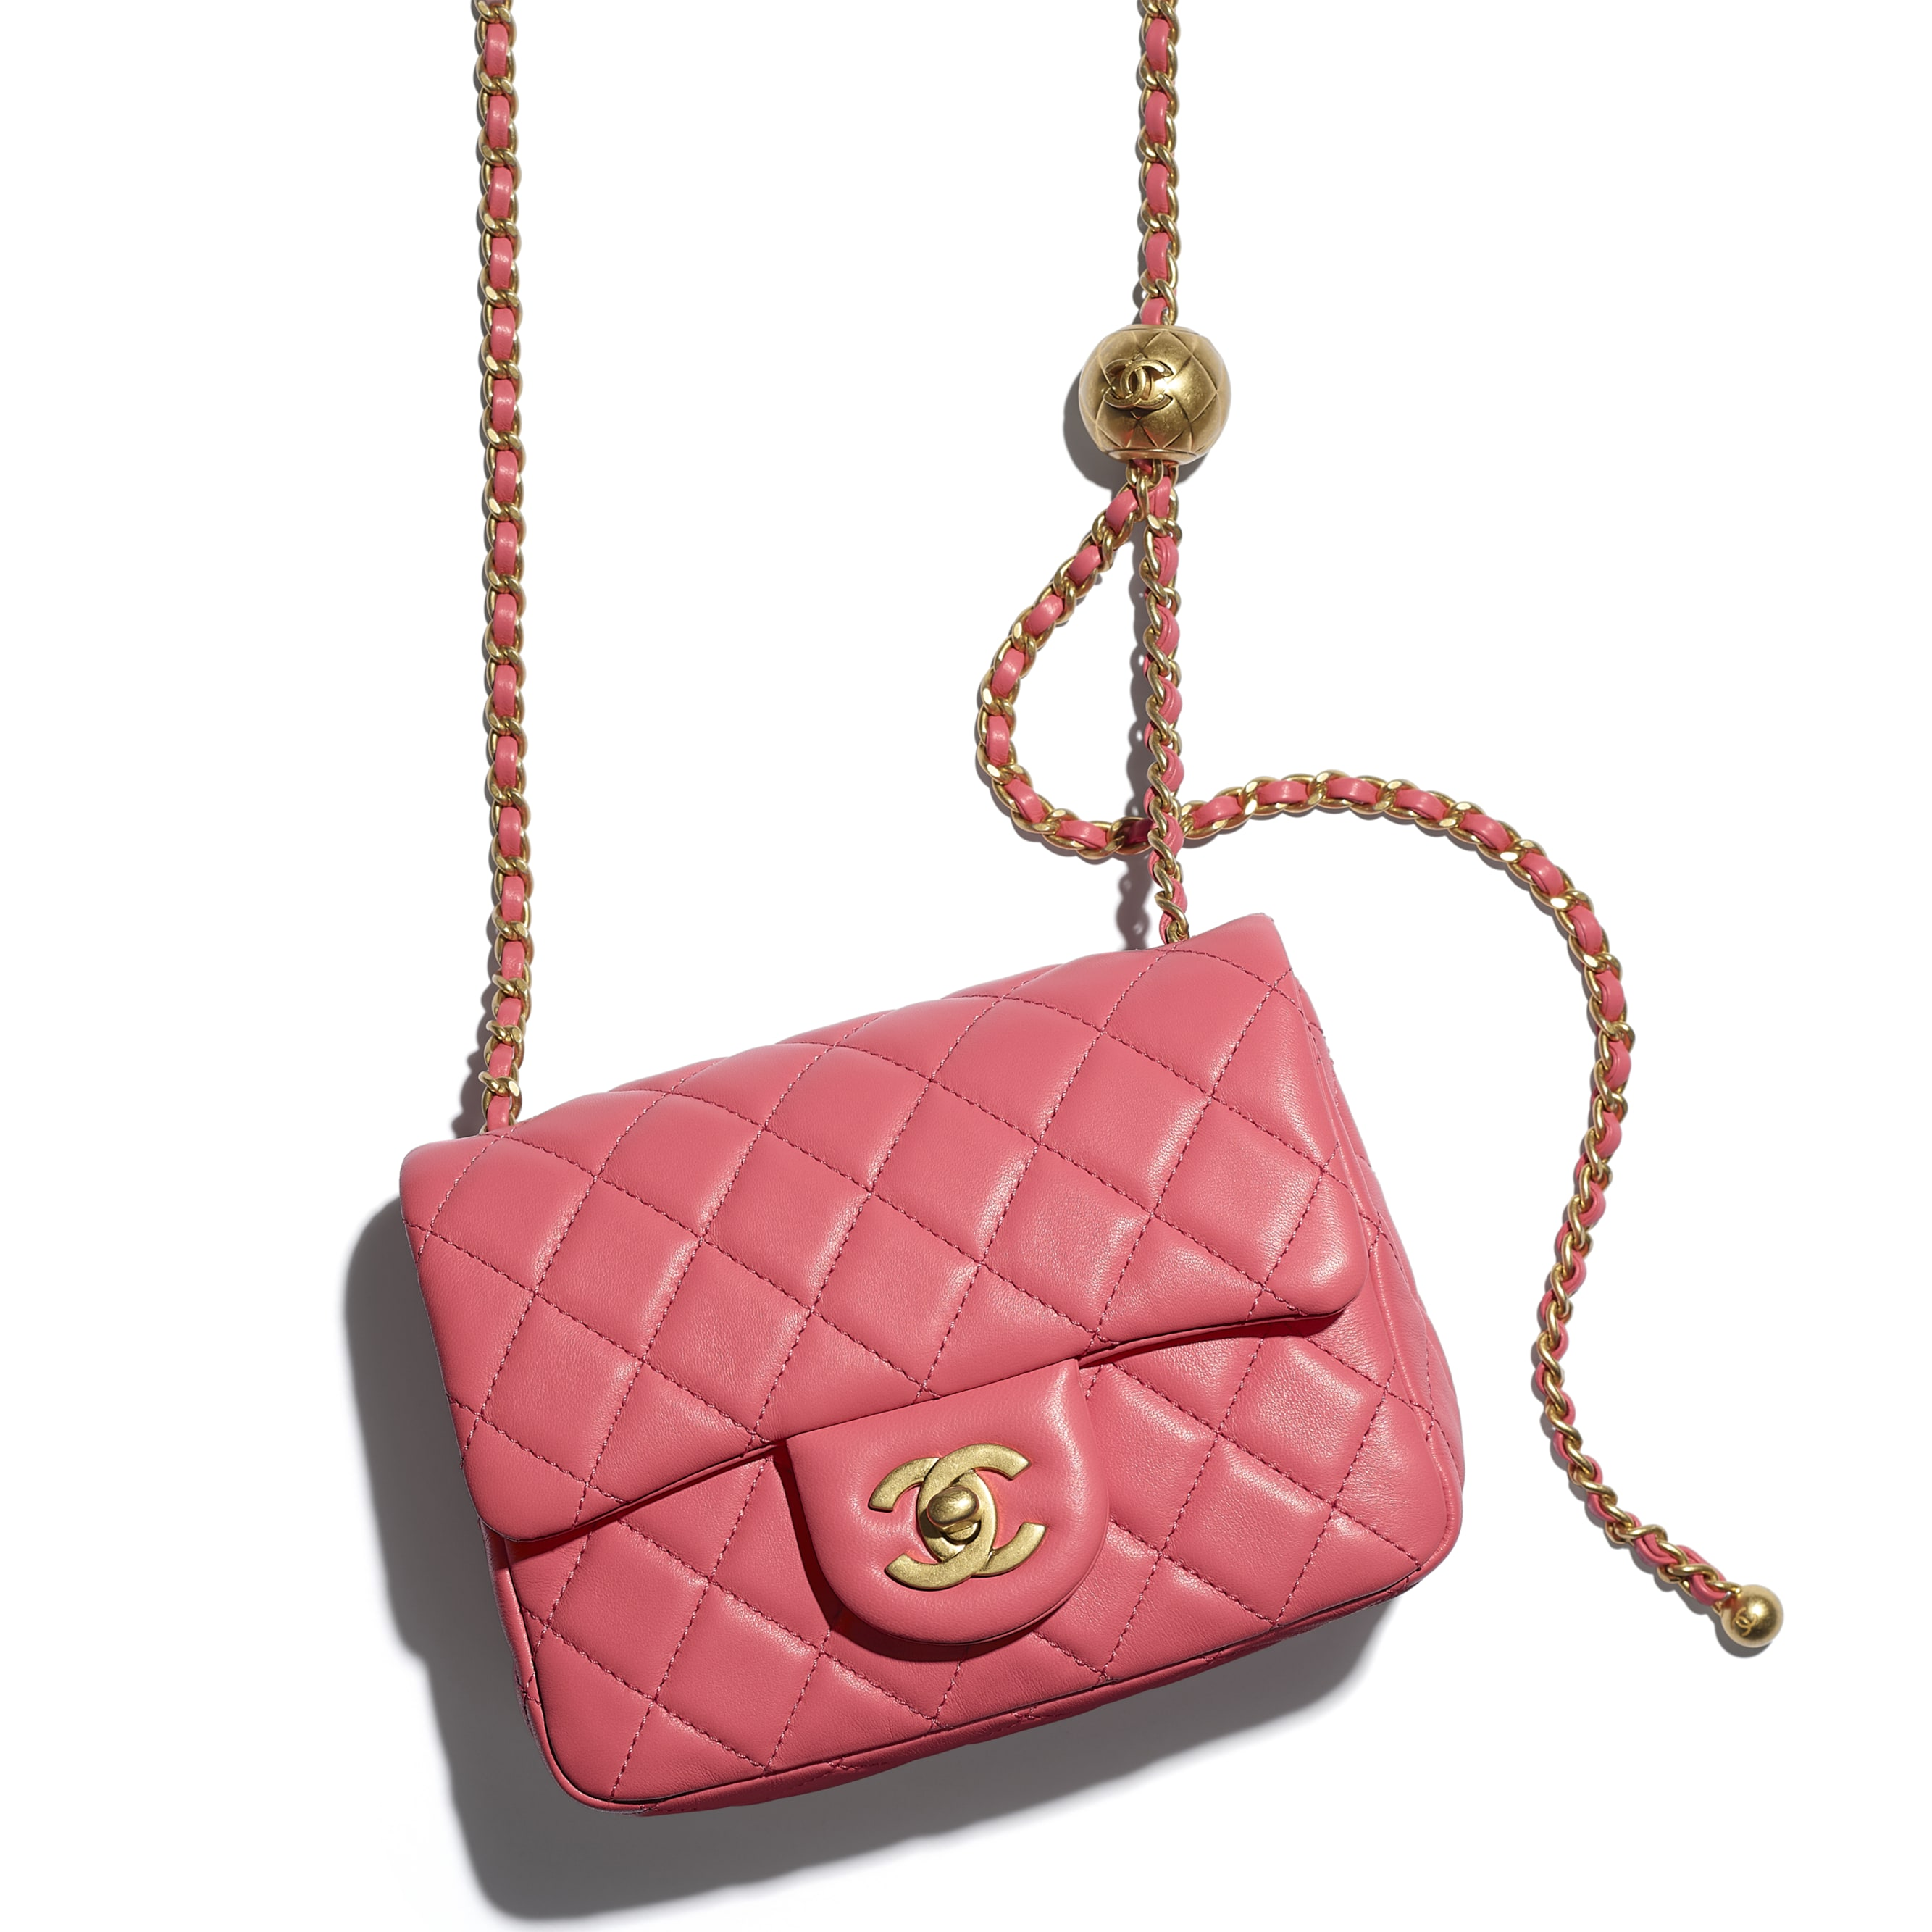 Mini Flap Bag - Coral - Lambskin - CHANEL - Extra view - see standard sized version